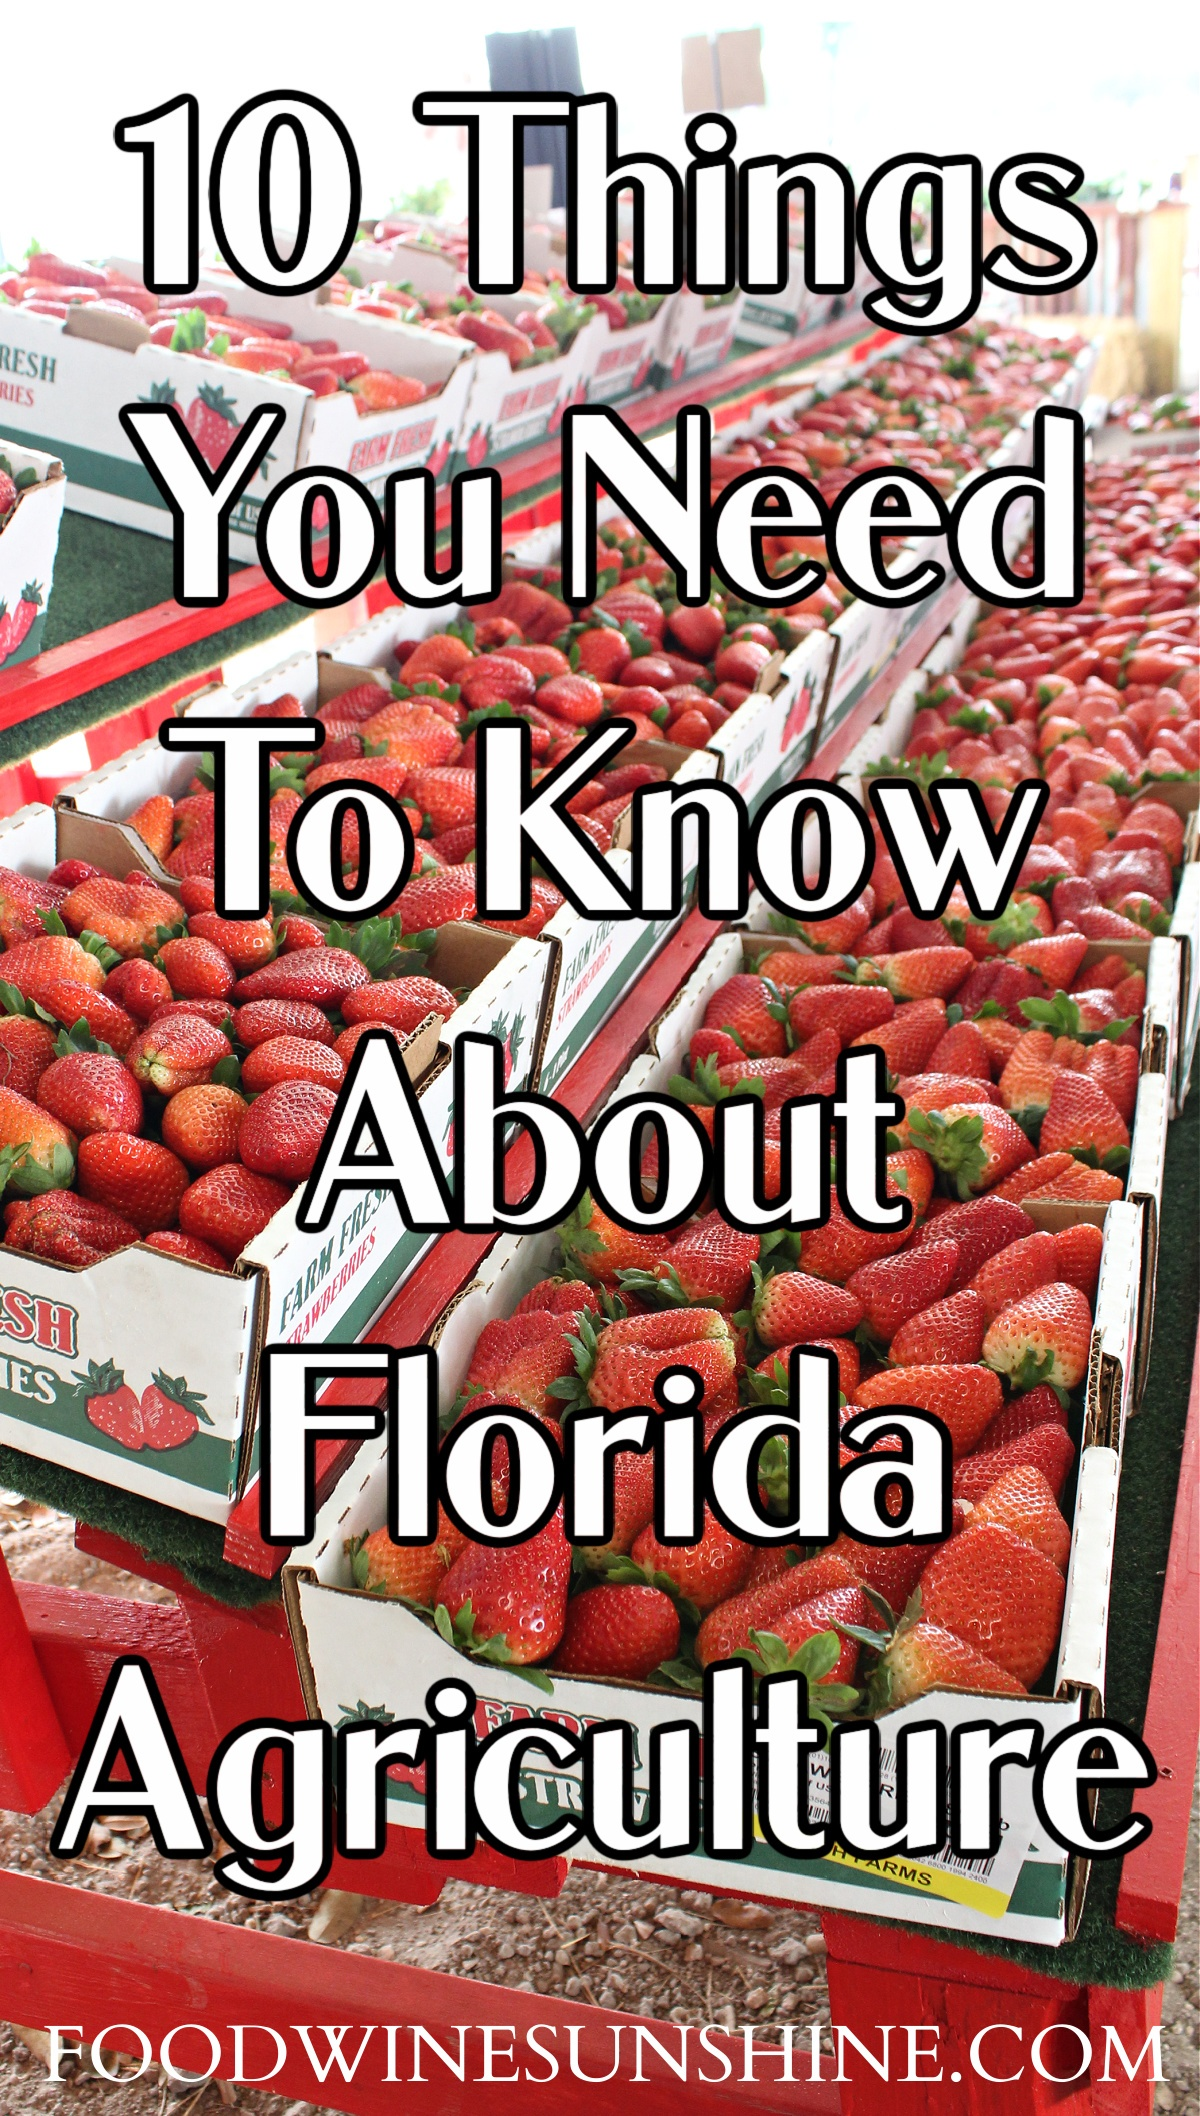 10 Things You Need To Know About Florida Agriculture